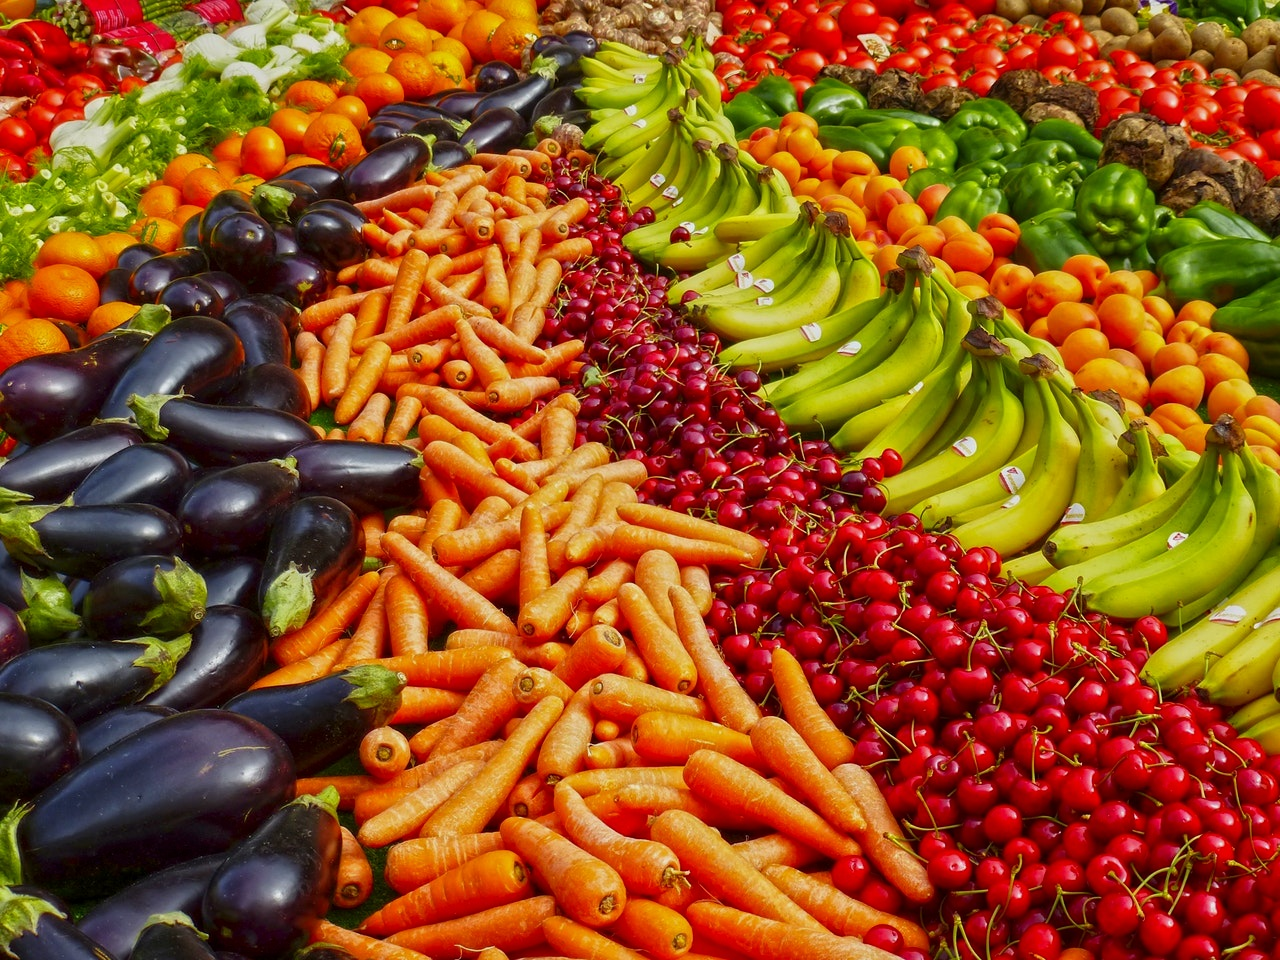 Food and Beverage Store - We offer import and export Contacts for a wide variety of Food and Beverage products. From fruits and vegetables, to oils and meat.